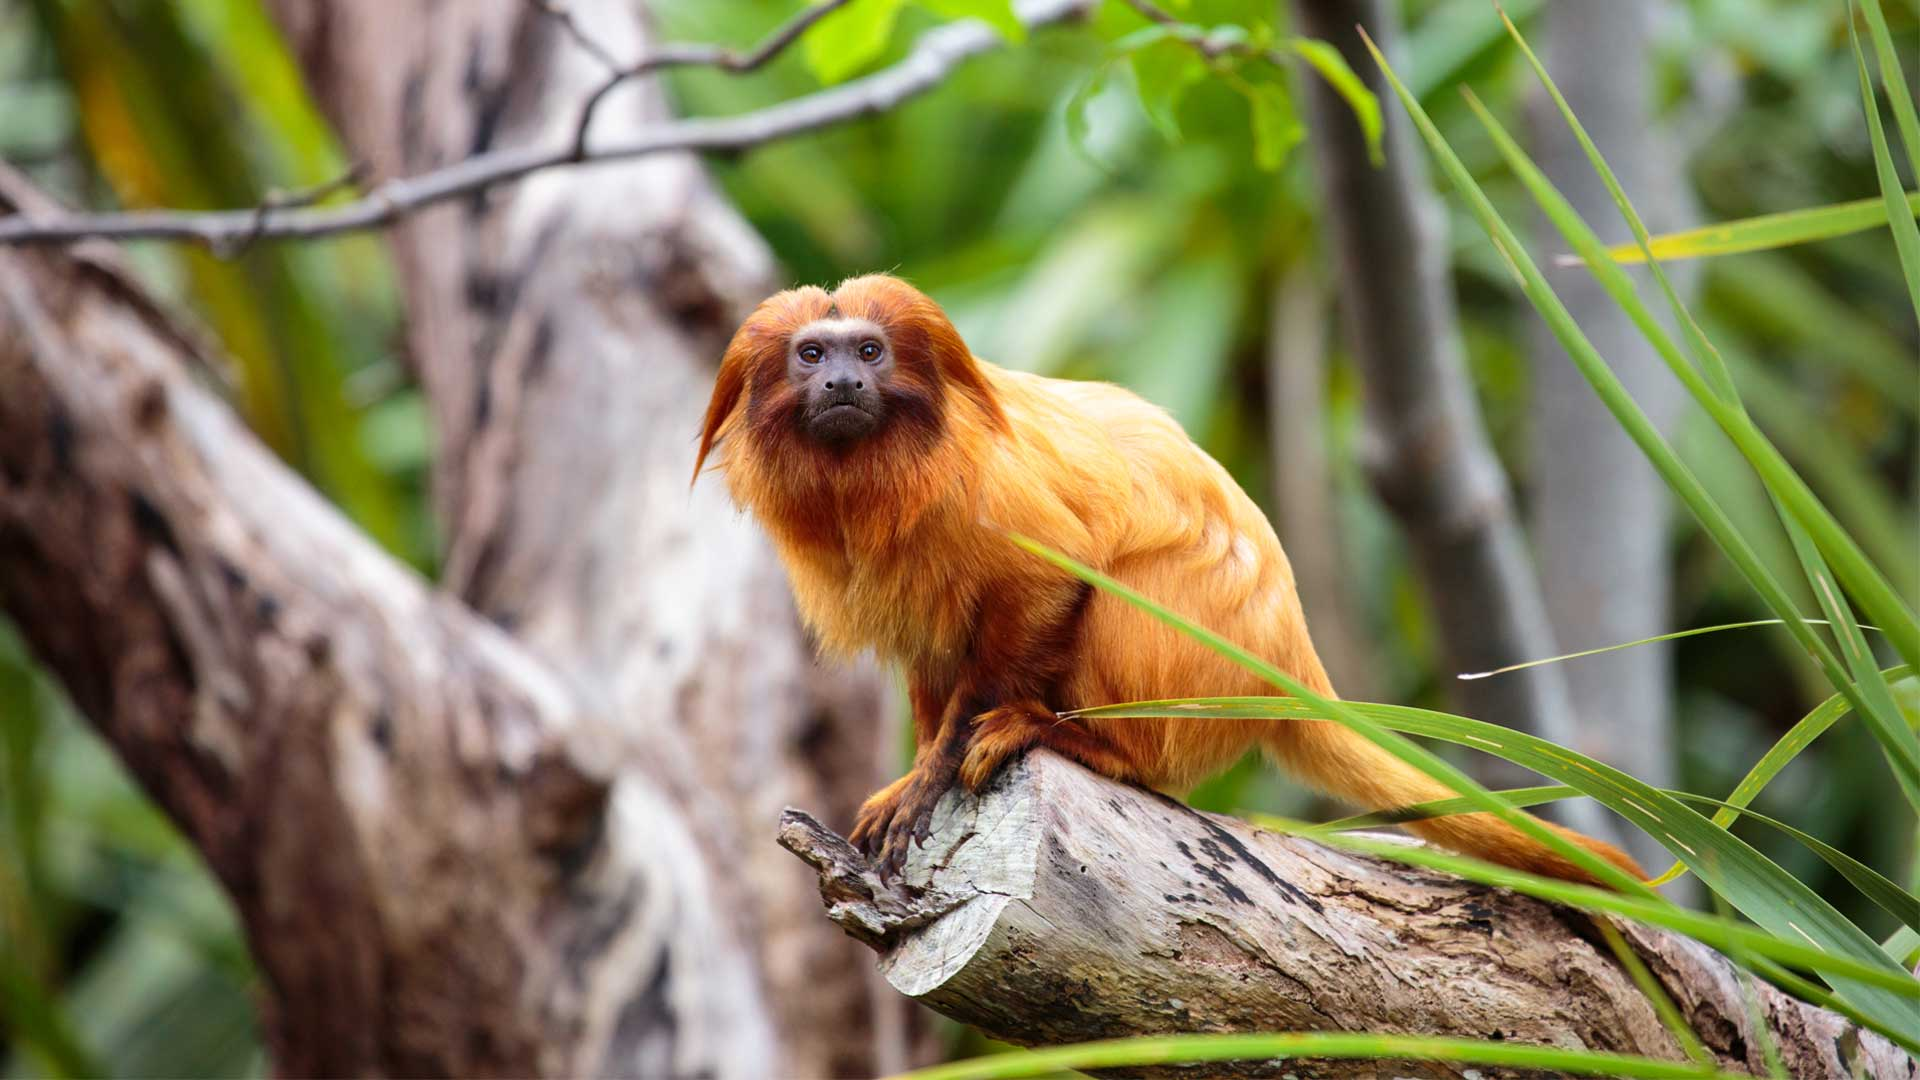 https://rfacdn.nz/zoo/assets/media/golden-lion-tamarin-gallery-2.jpg